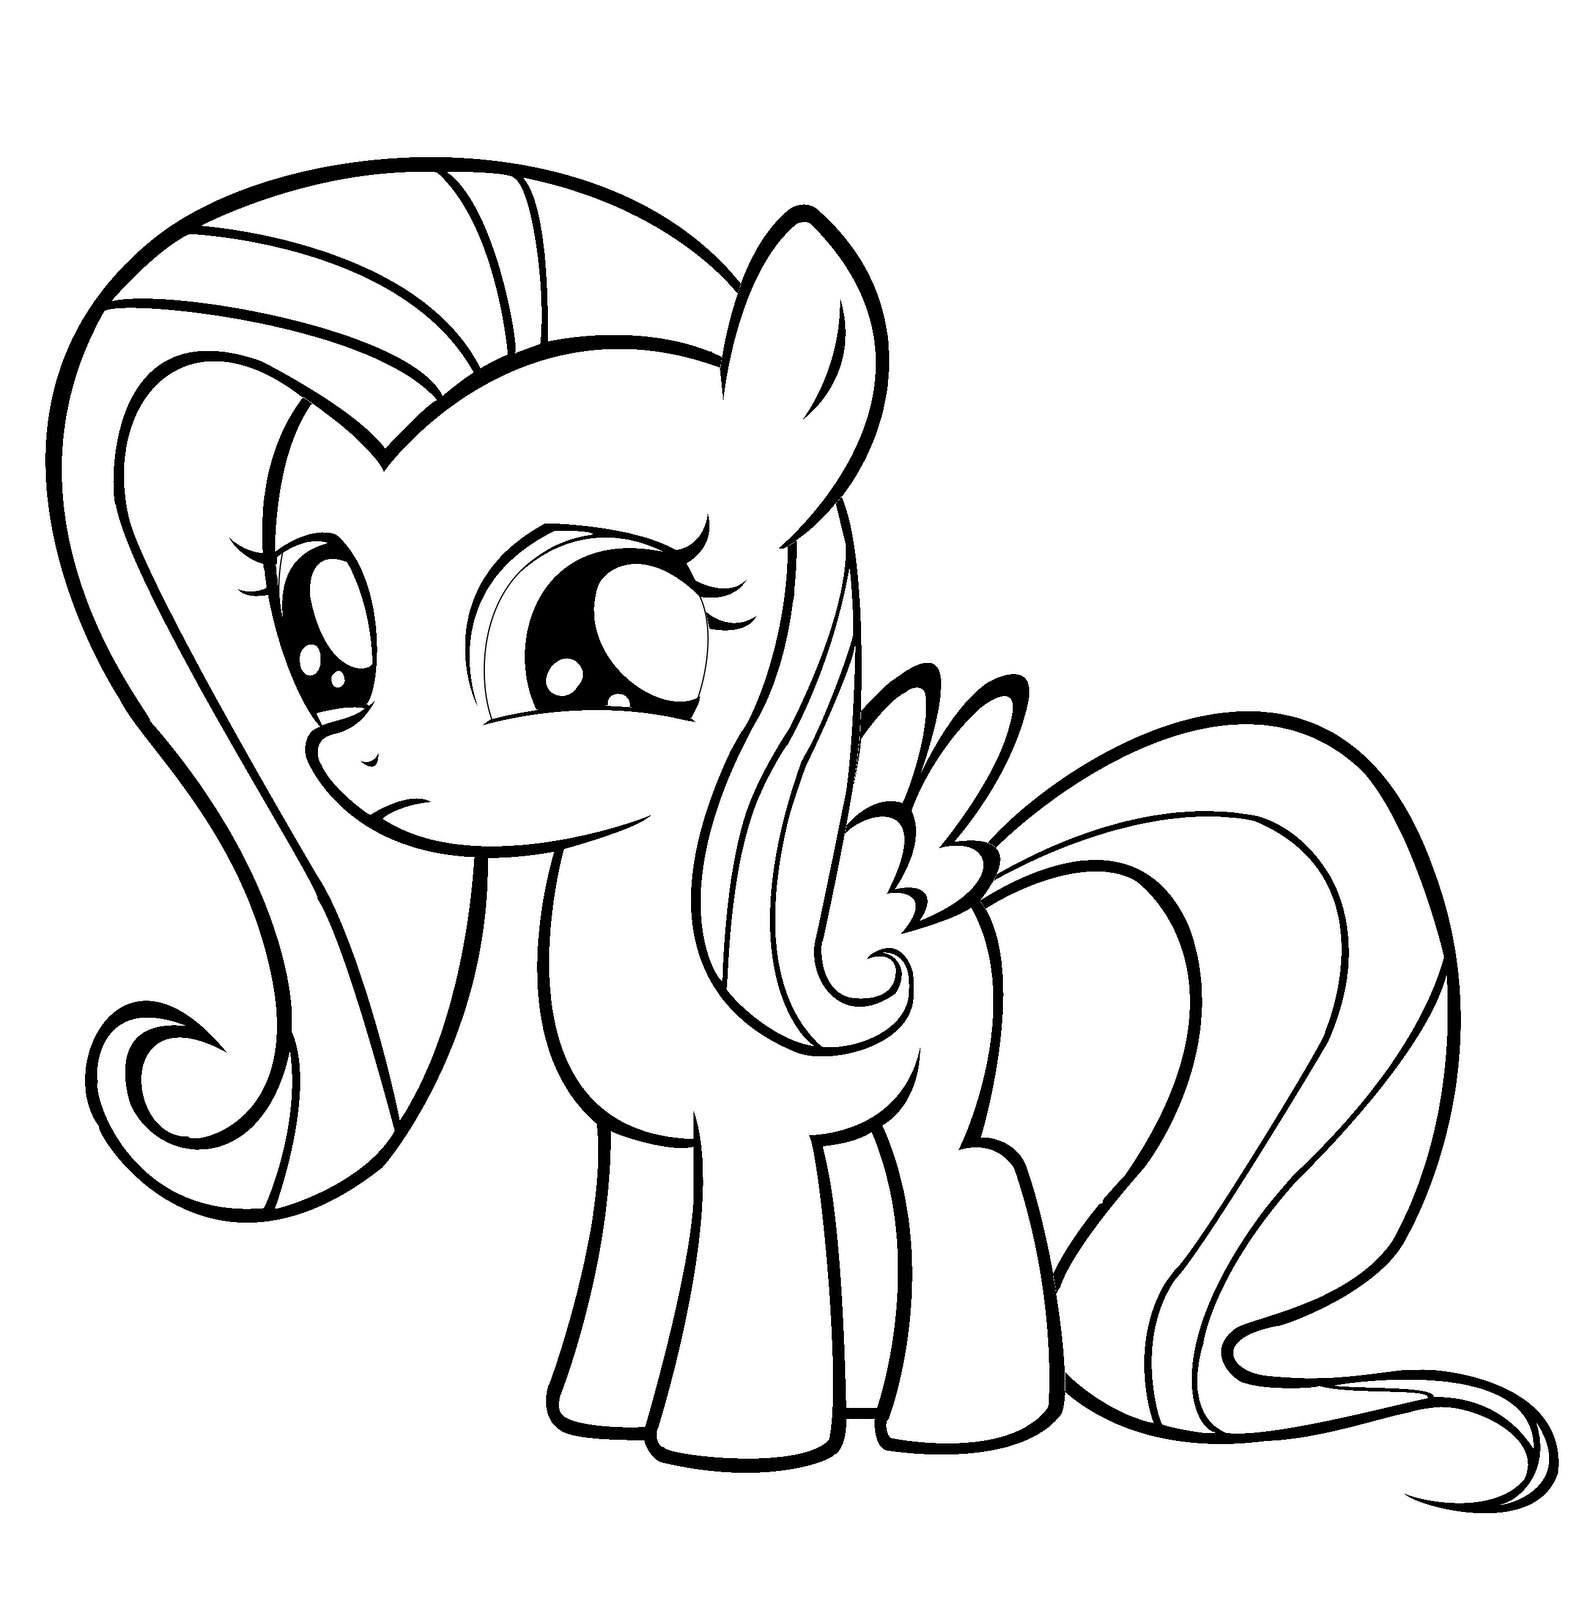 coloring pages of fluttershy fluttershy coloring pages coloring pages to download and of fluttershy pages coloring